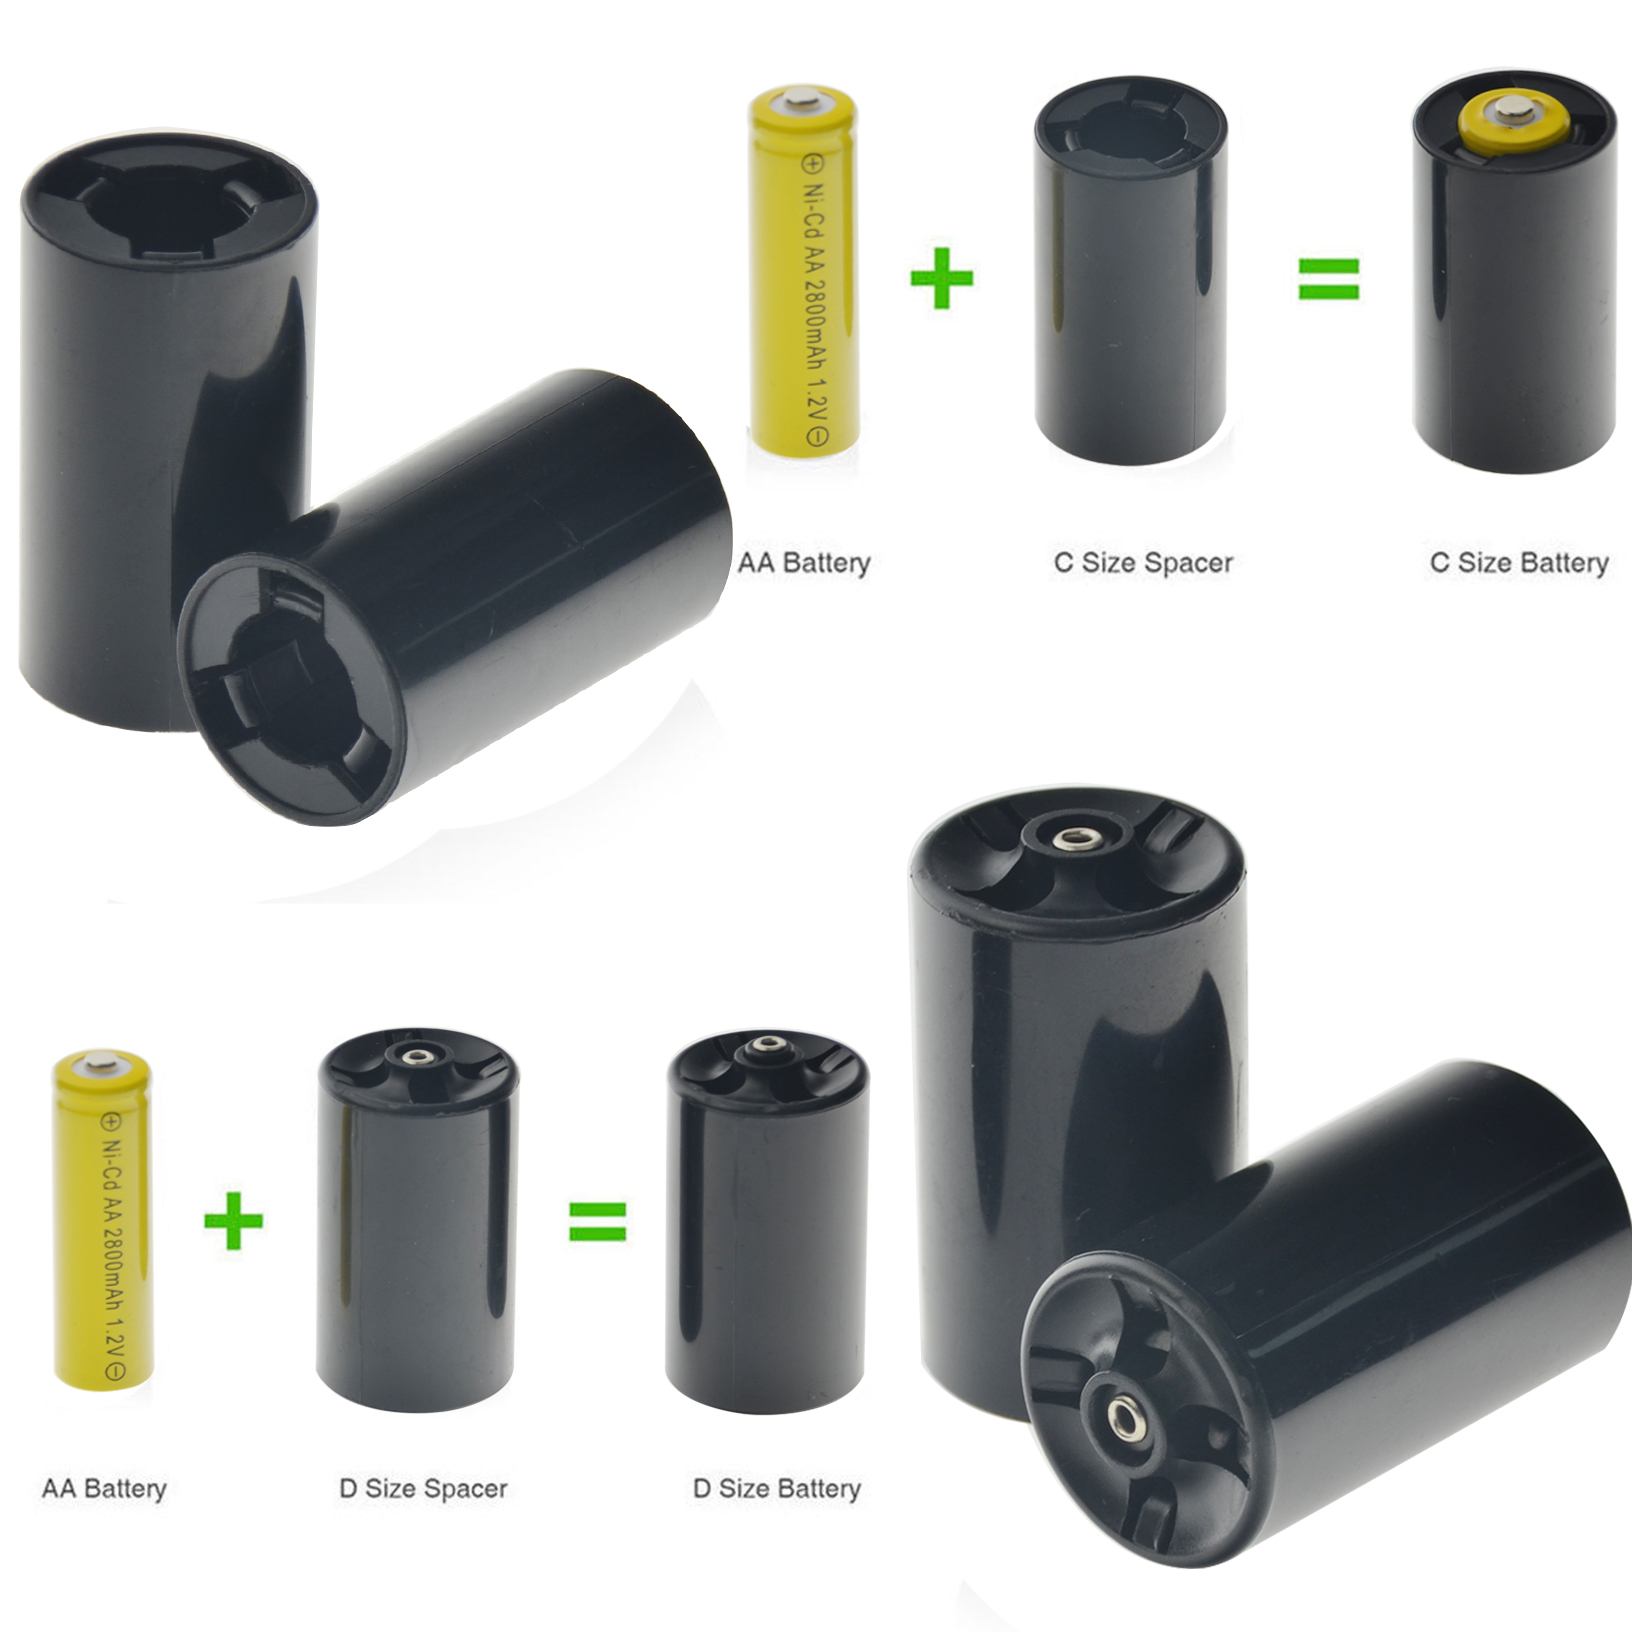 C/D Size Adaptor Converter Alkaline Battery Rechargeable Adaptor For  C/D AA  Size Ni-MH/NI-CD Spacers EBL Black Converter